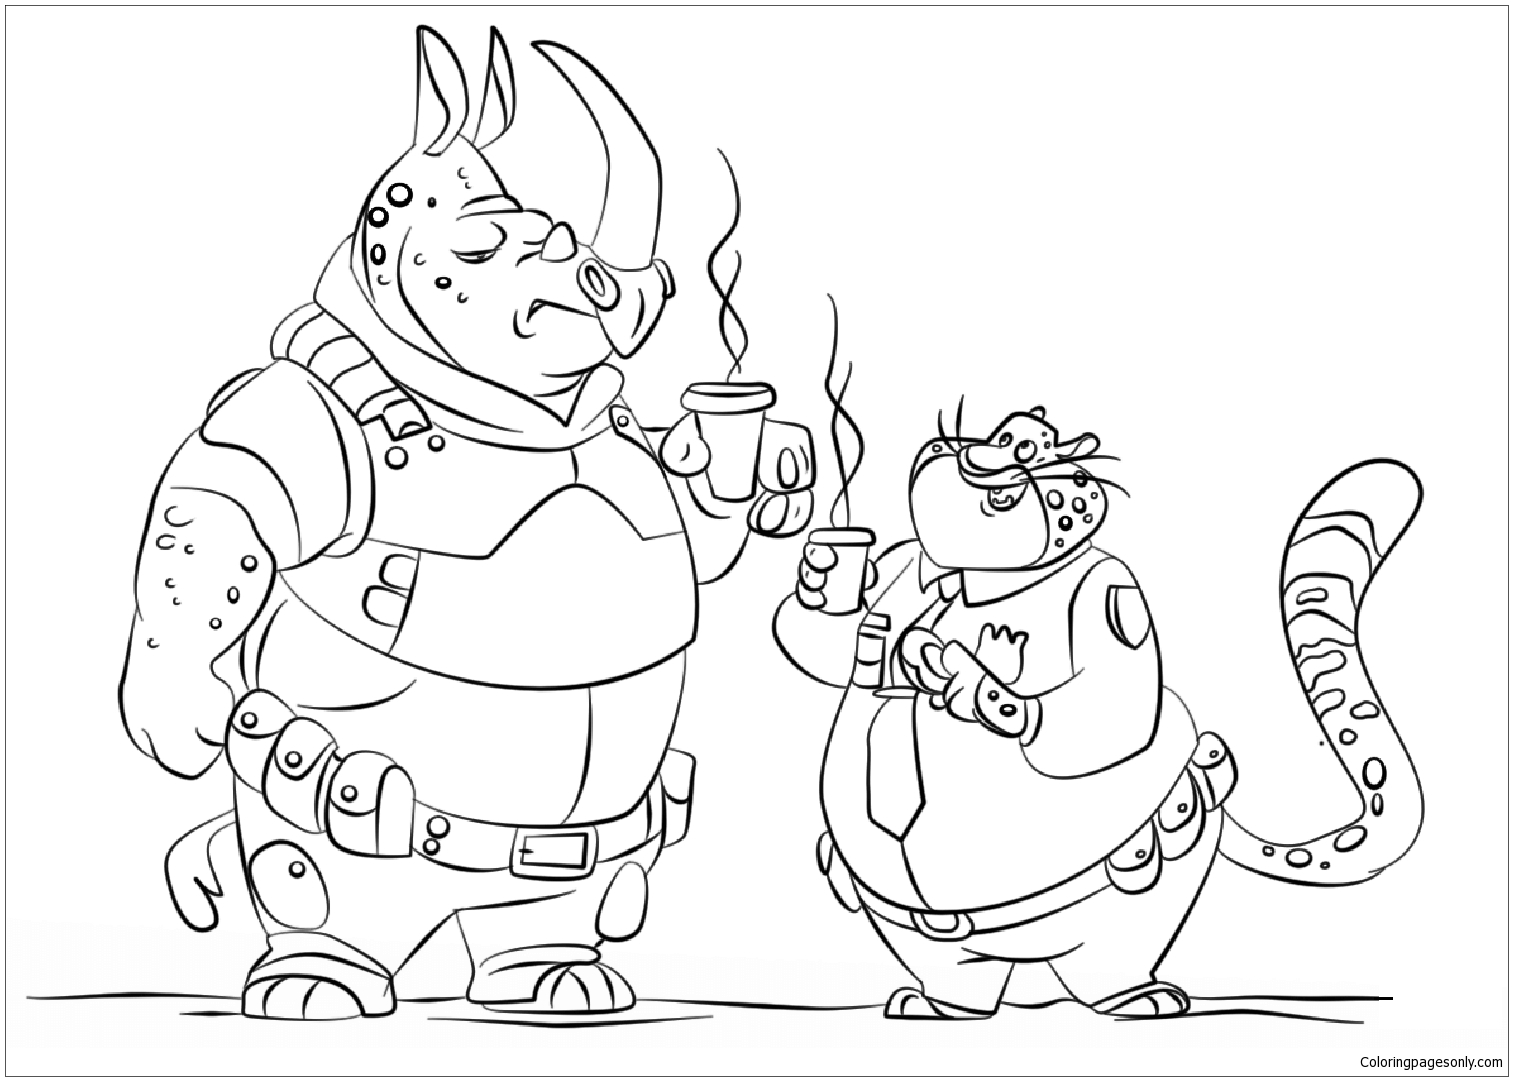 Zootopia Police Officer Coloring Page Free Coloring Pages Online